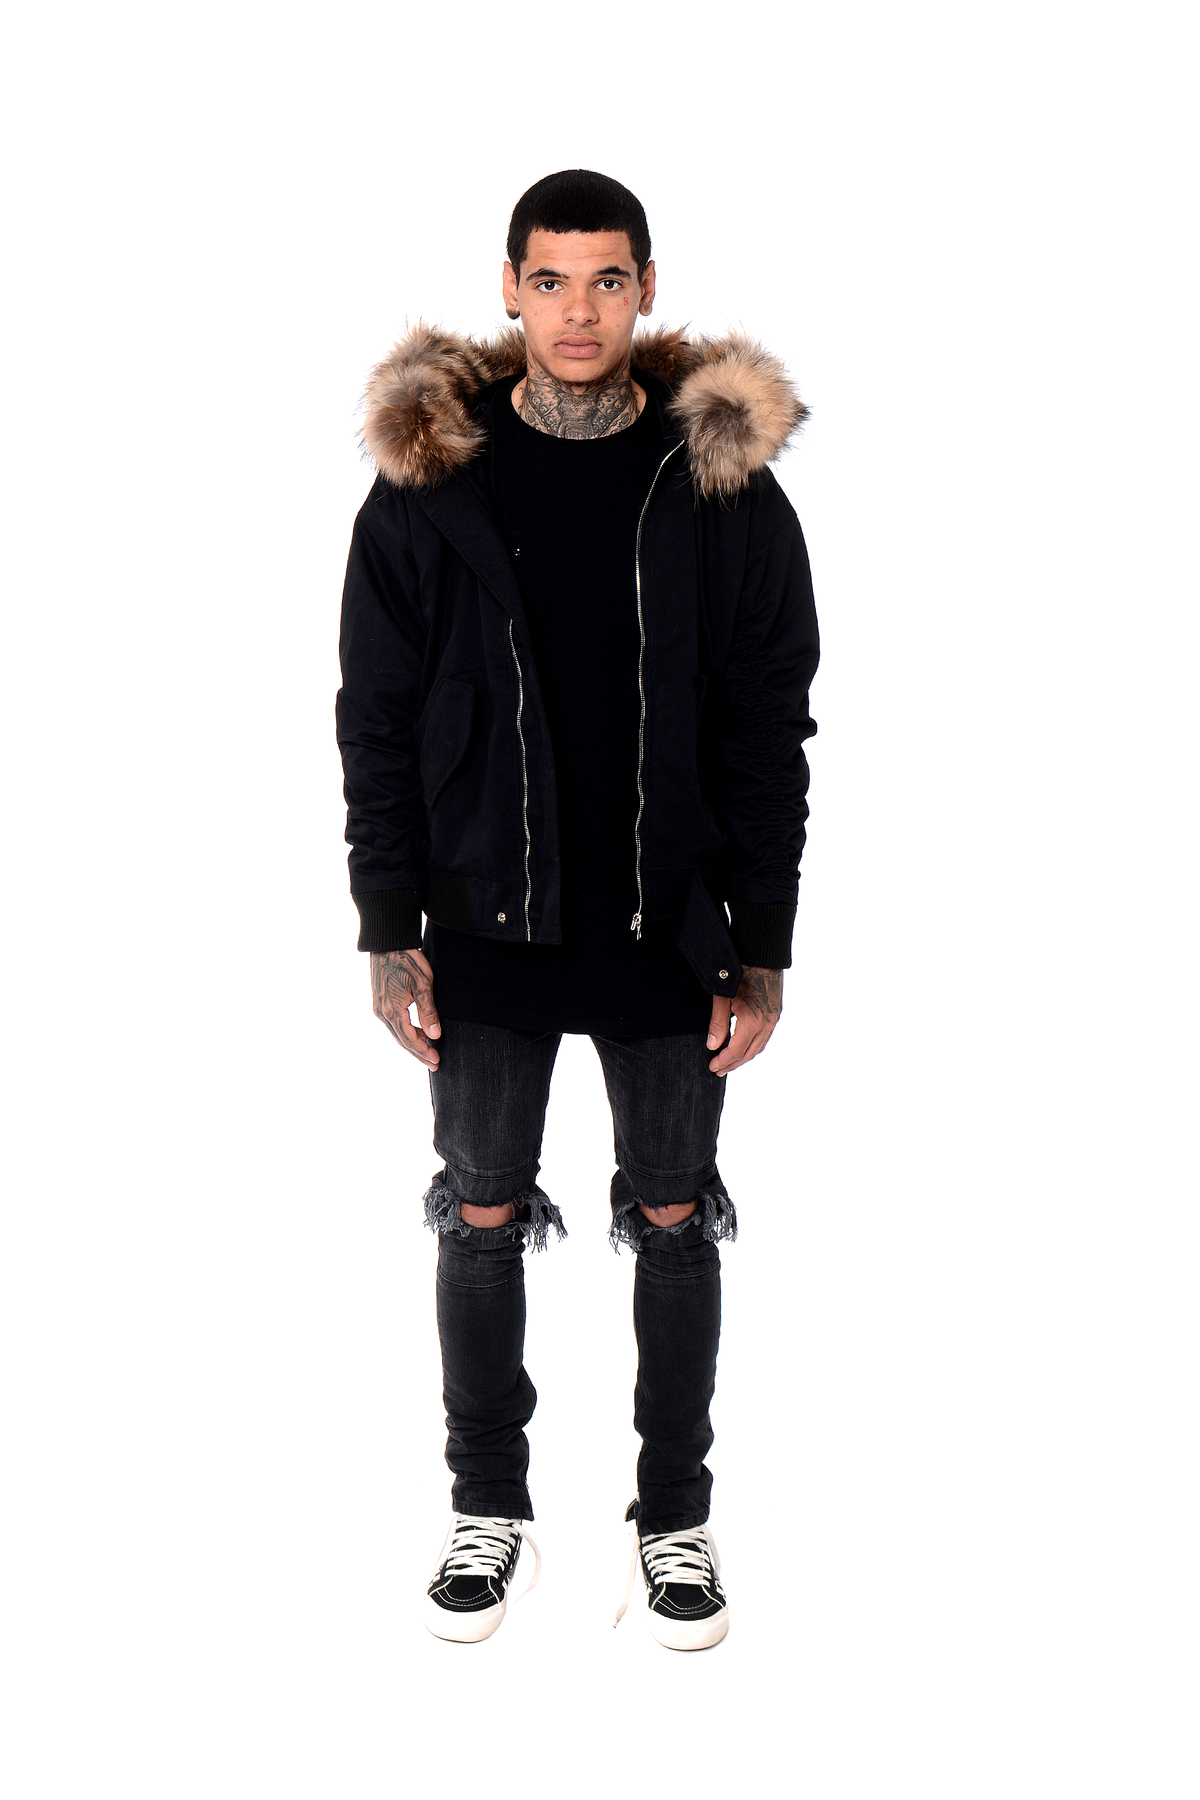 Fur Trim Bomber Jacket - Black